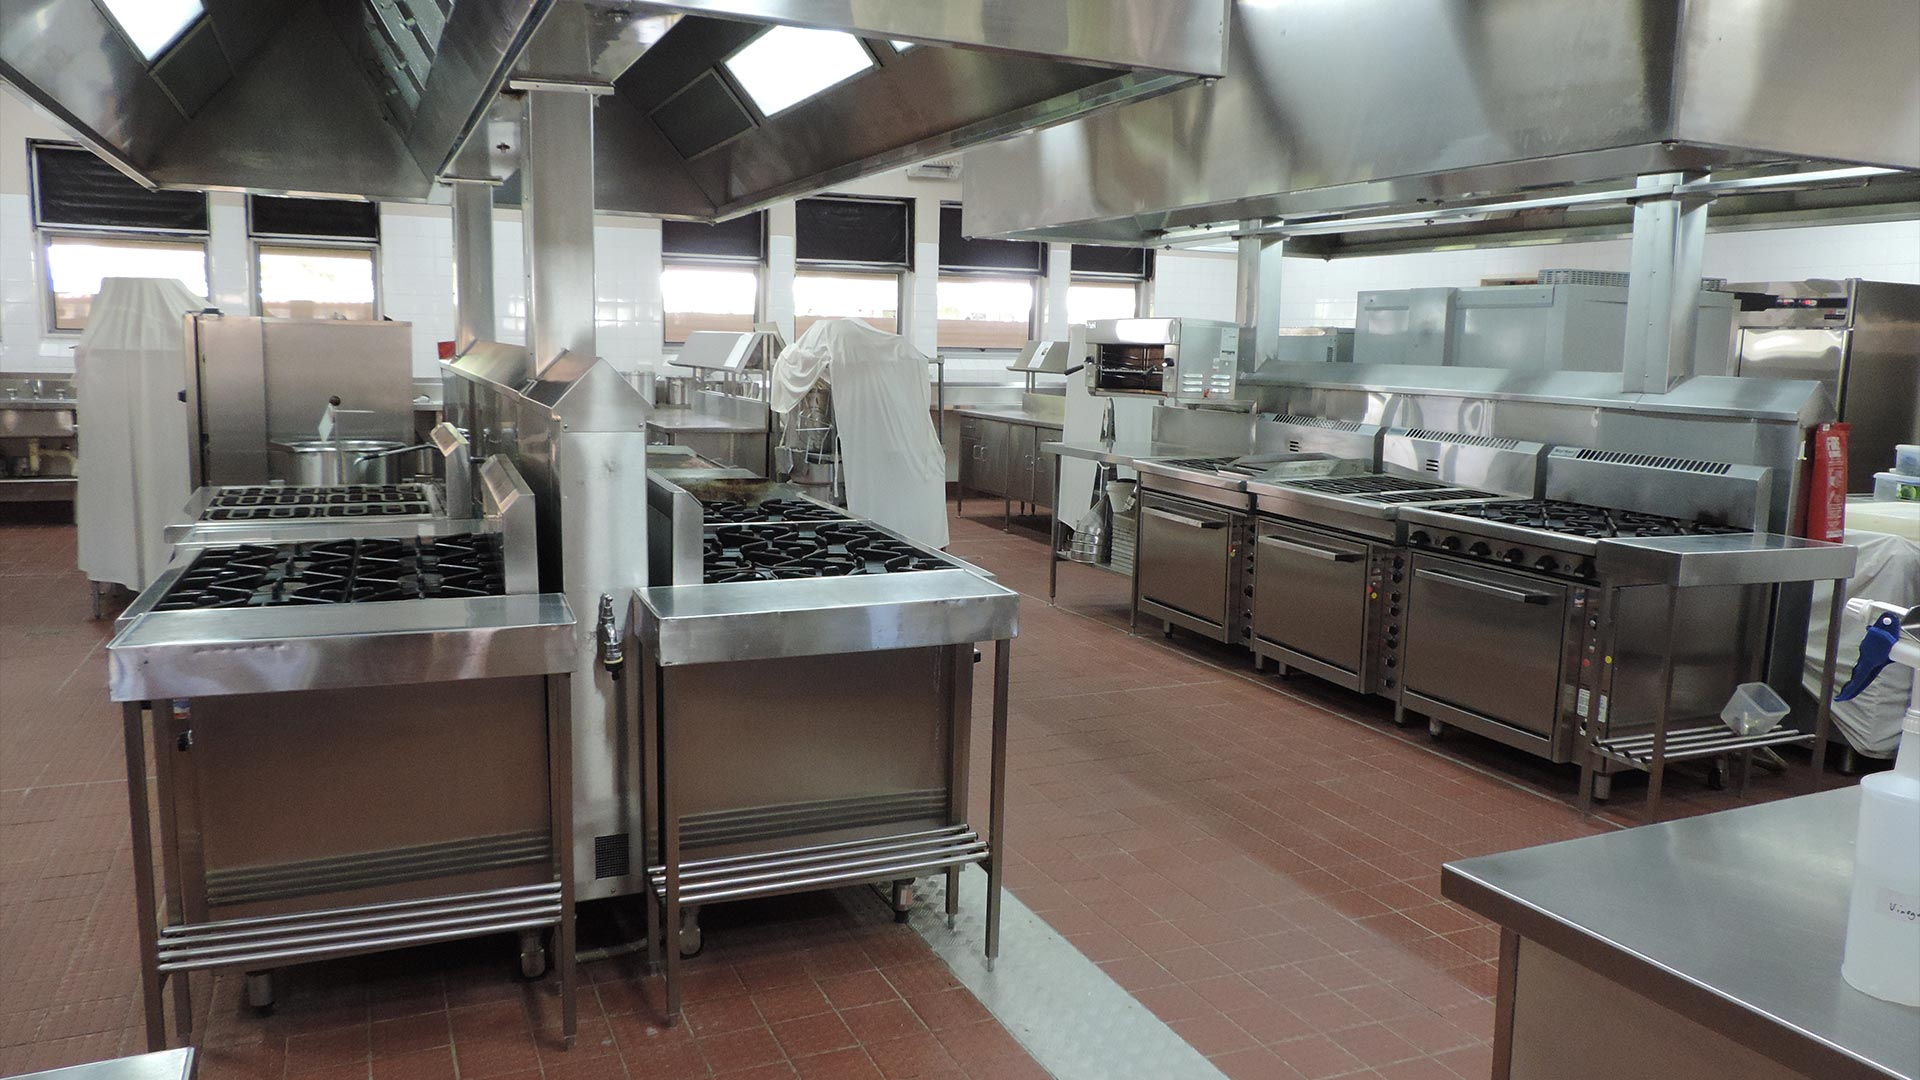 roma-facilities-hospitality-hubs-commericial-kitchens-01.jpg